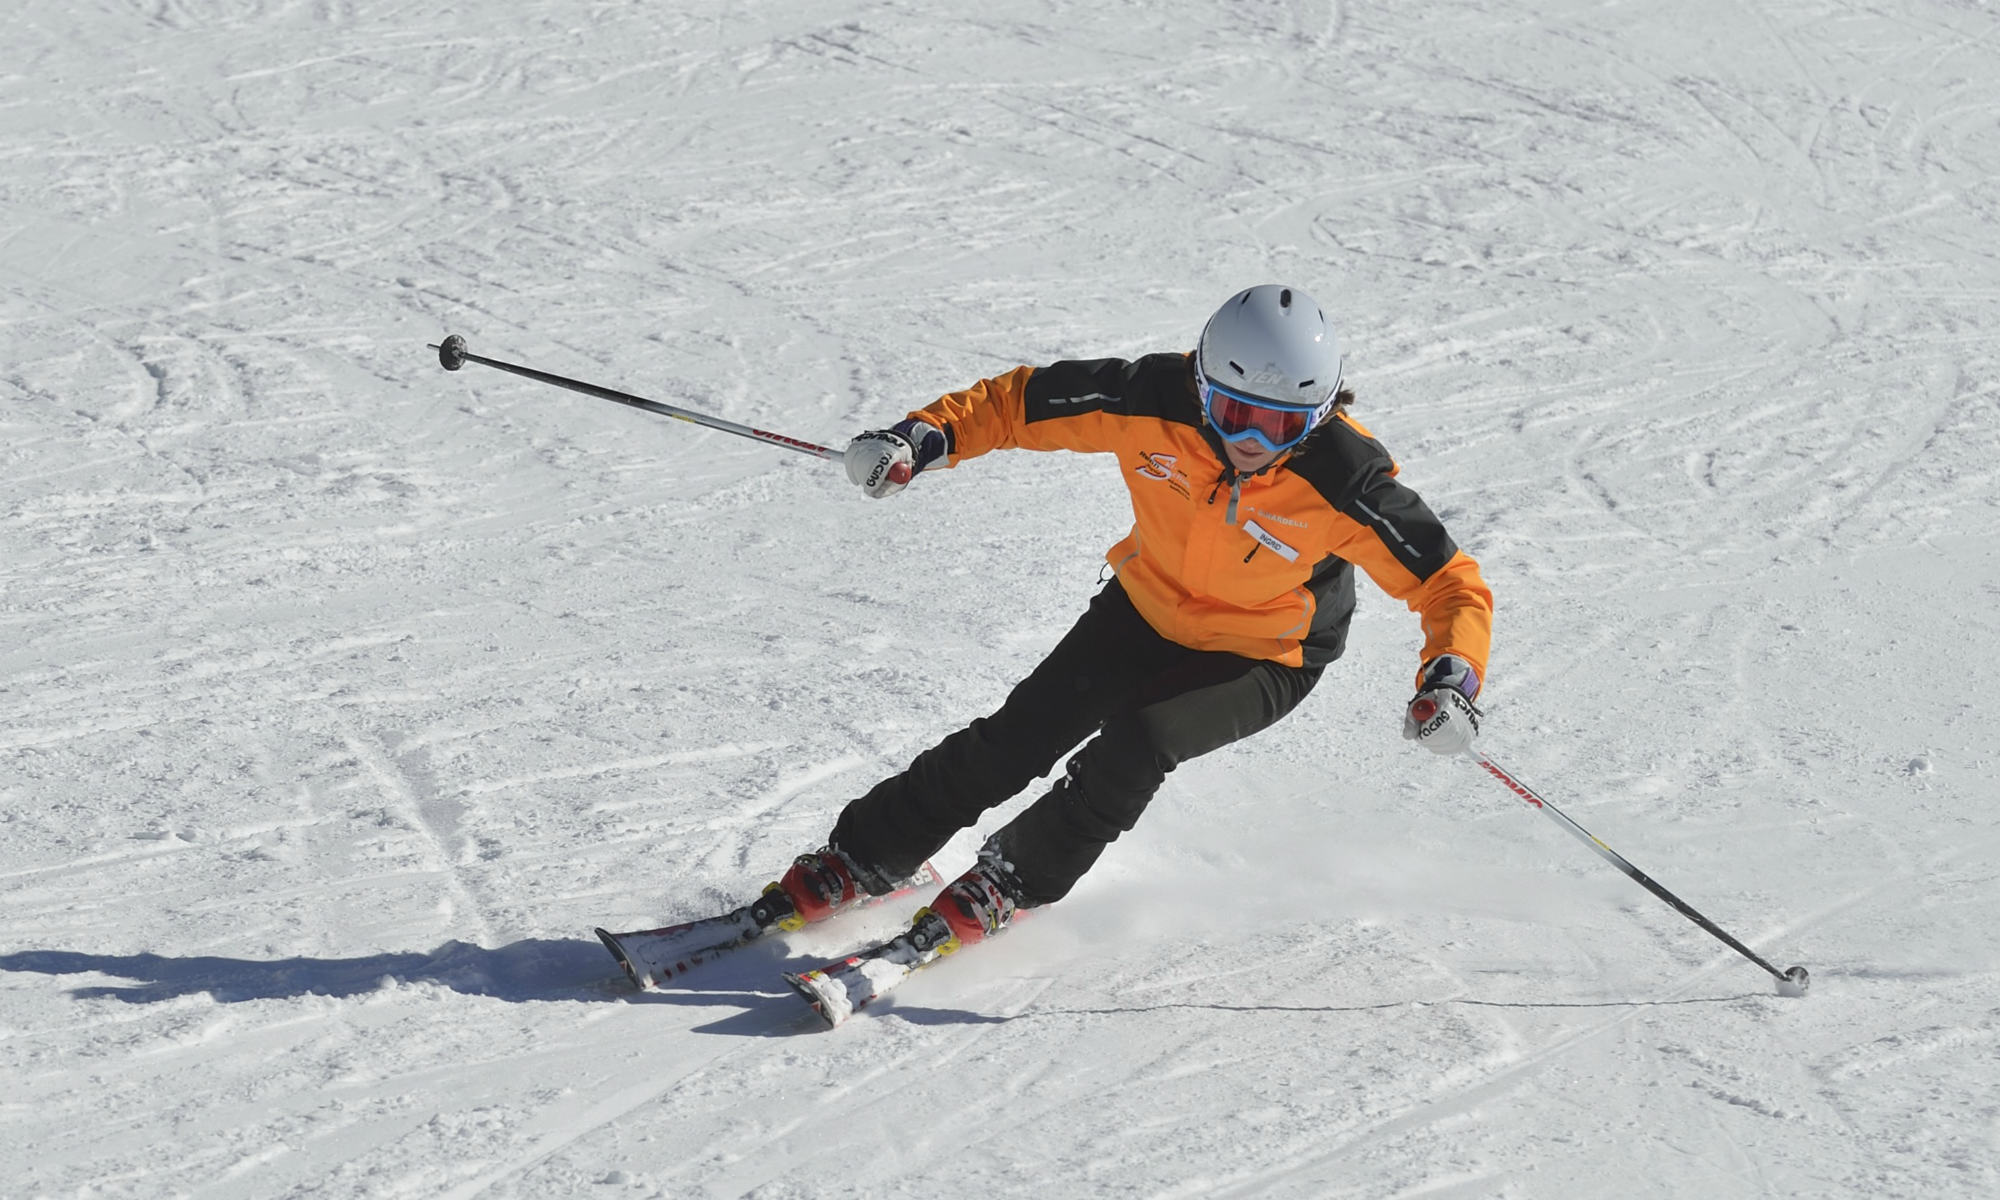 A skier demonstrates alpine skiing with the right body posture.